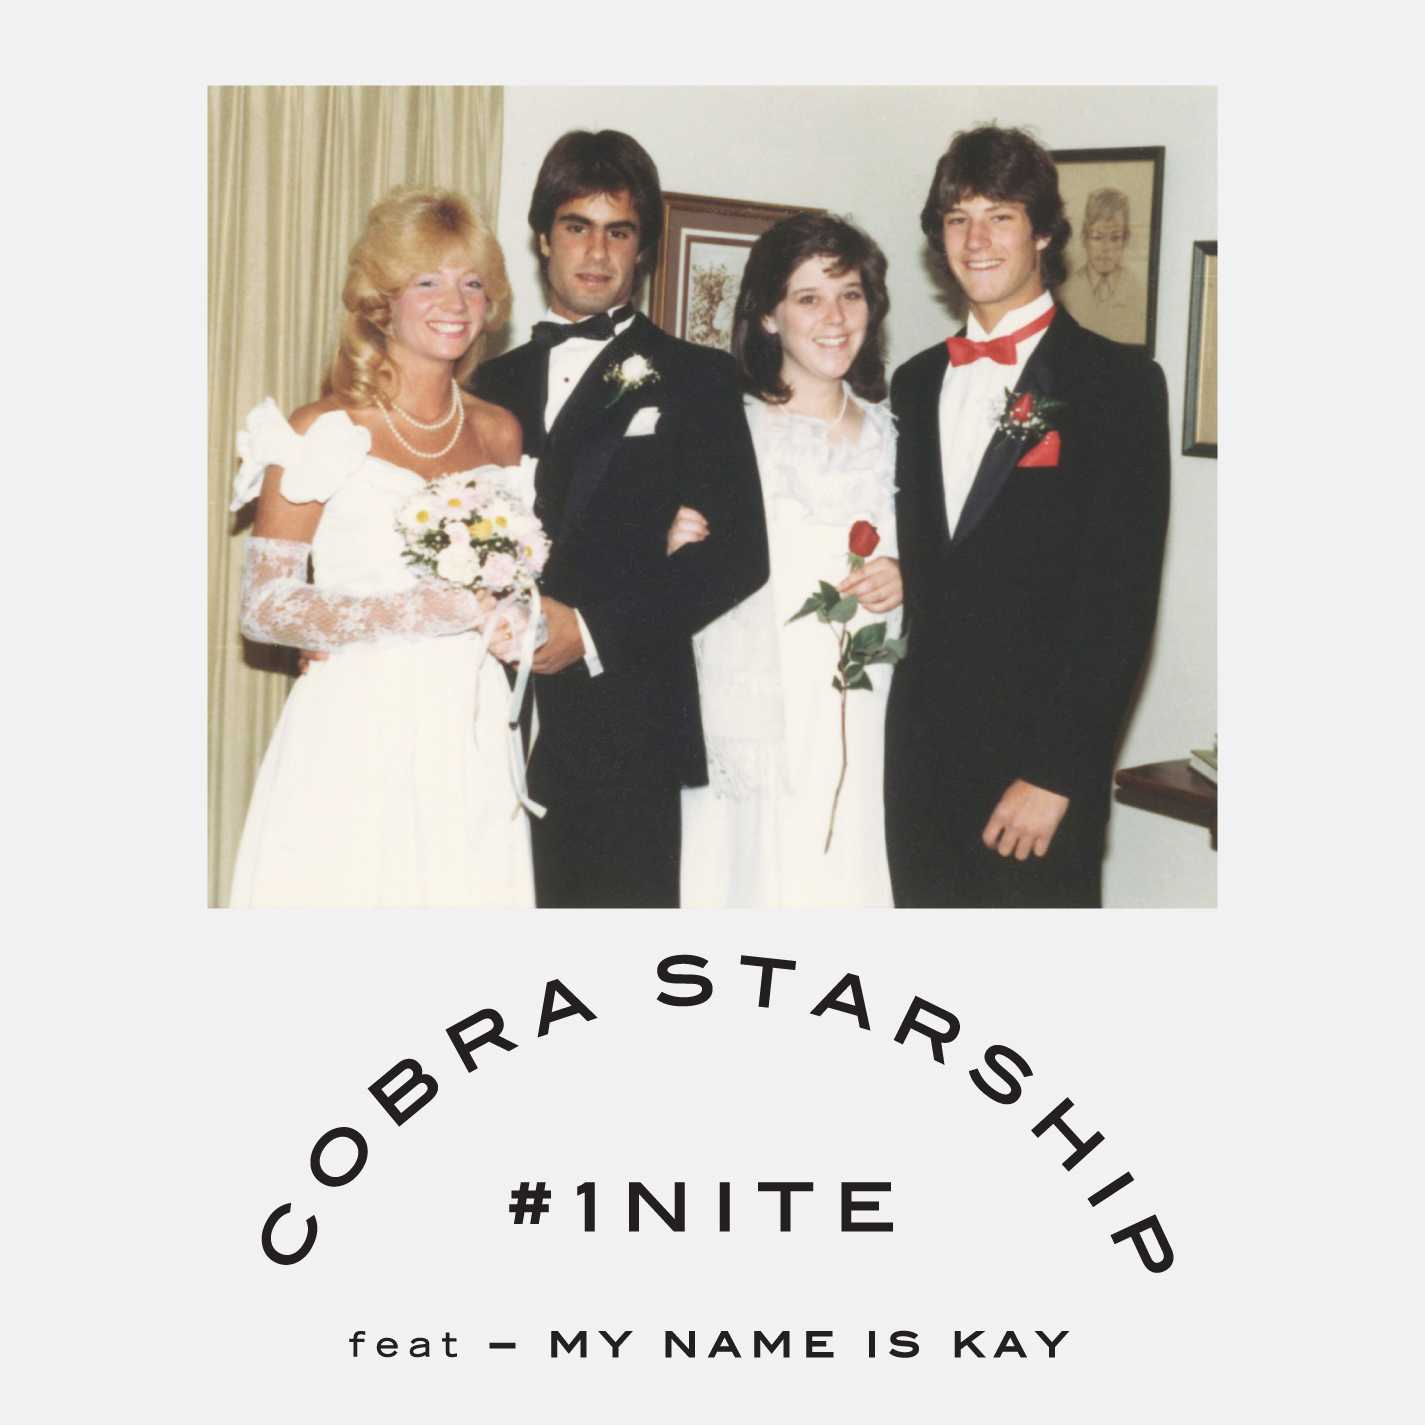 Cobra Starship feat My Name Is Kay #1Nite Lyrics